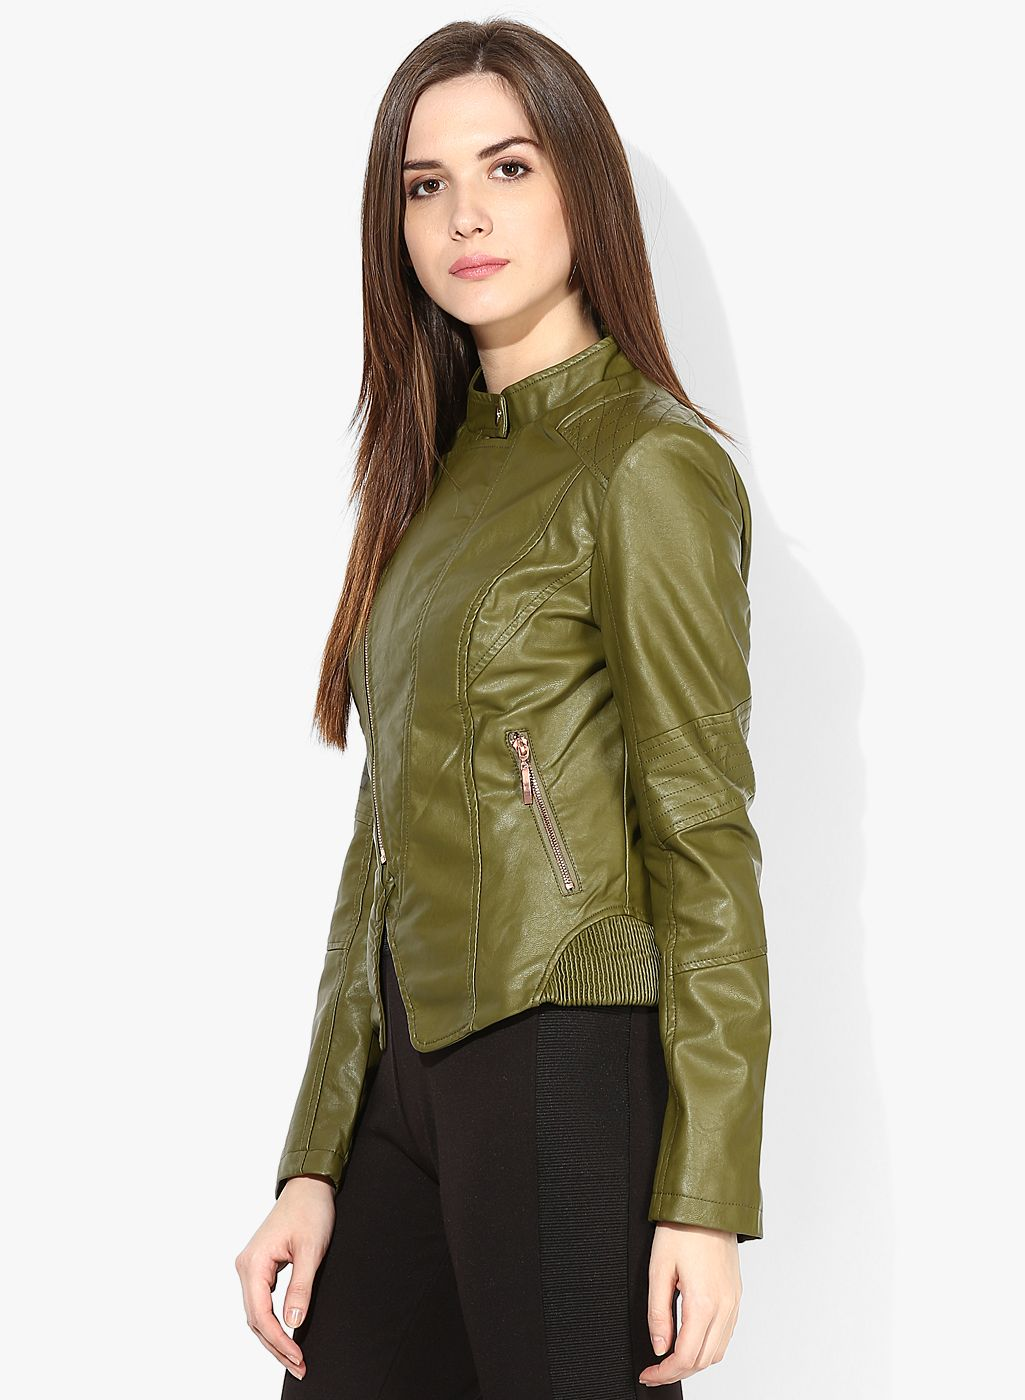 Buy Alia Bhatt For Jabong Olive Green Faux Leather Quilted Jacket ...